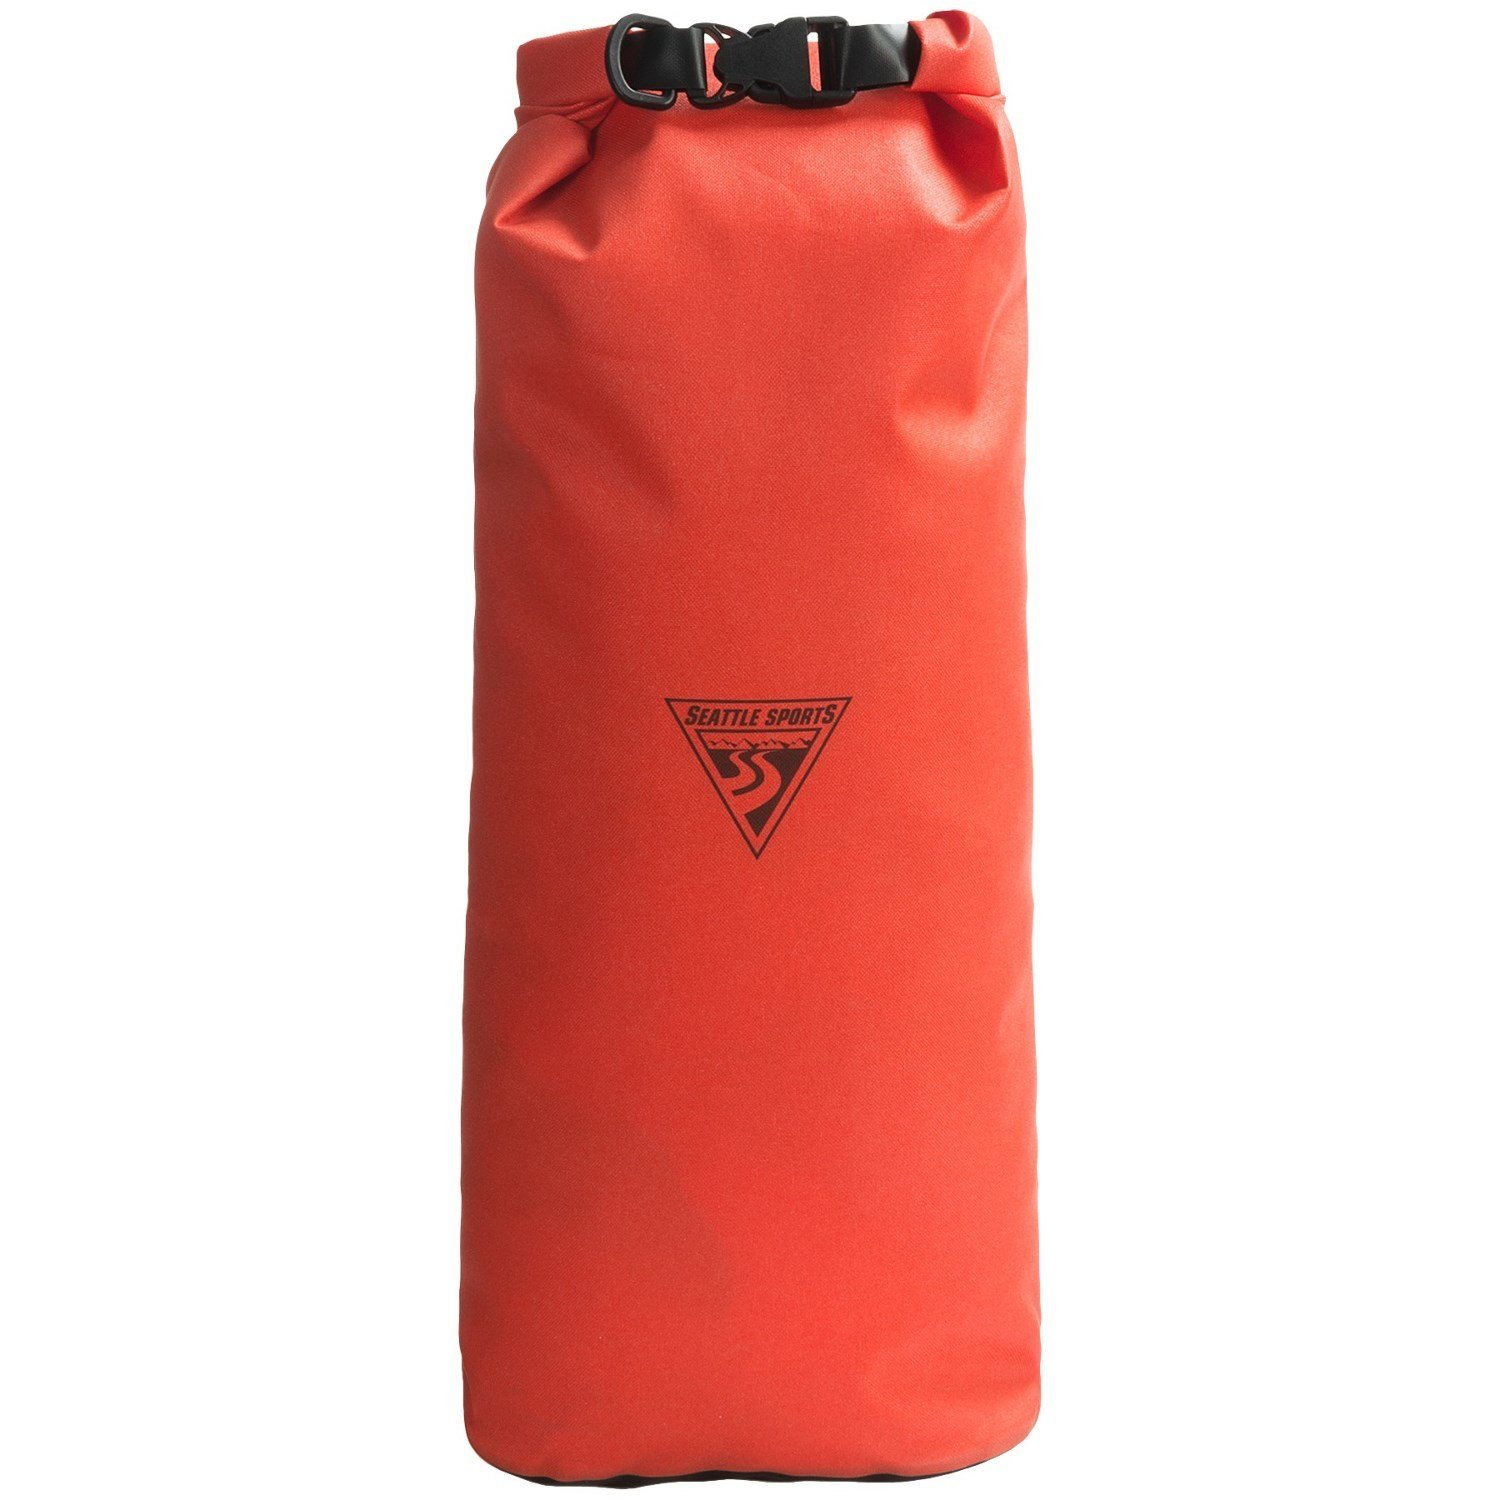 Seattle Sports Extra Heavy Duty Waterproof Dry bags, ass't sizes